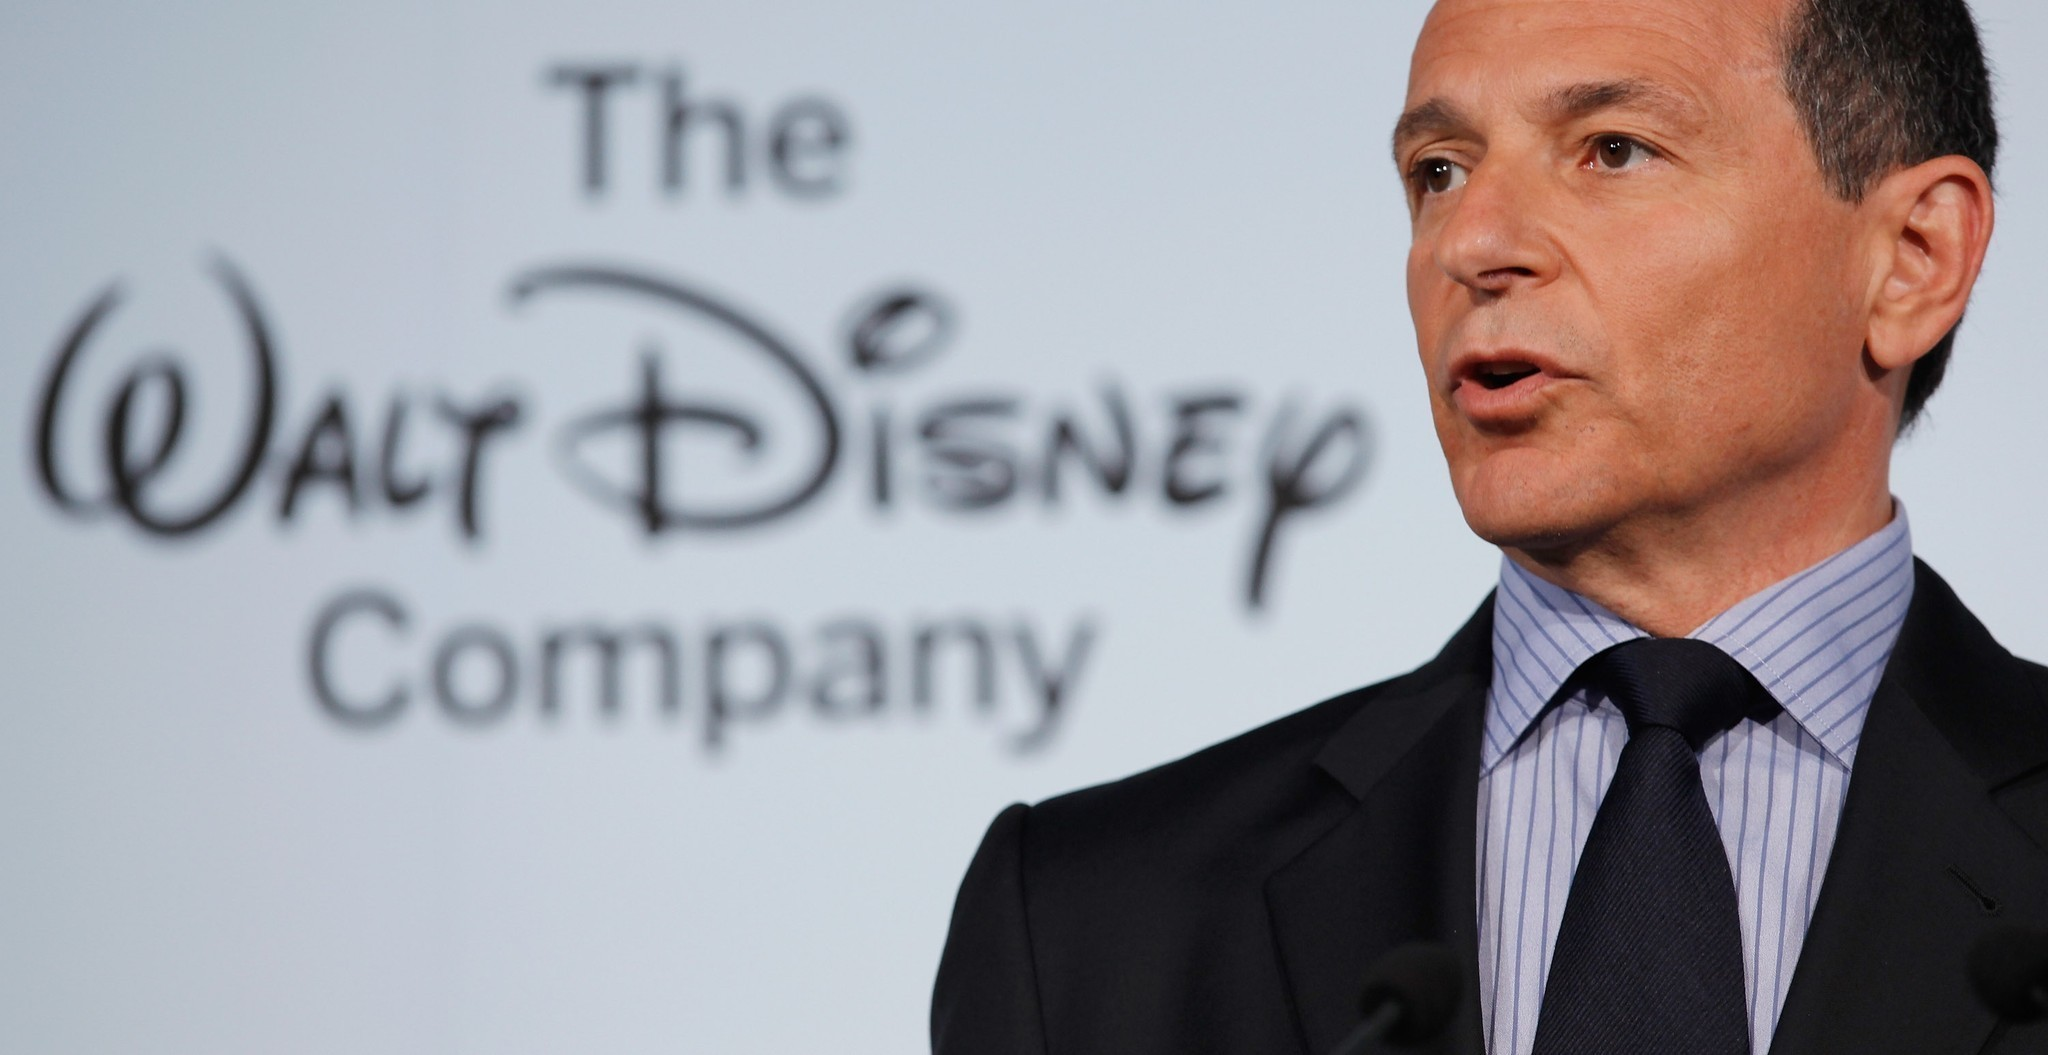 bob iger and disney The disney ceo and most powerful person in entertainment opens up about his plan for a netflix rival, espn's politics problem and how #metoo has changed his company walt disney co ceo bob iger.